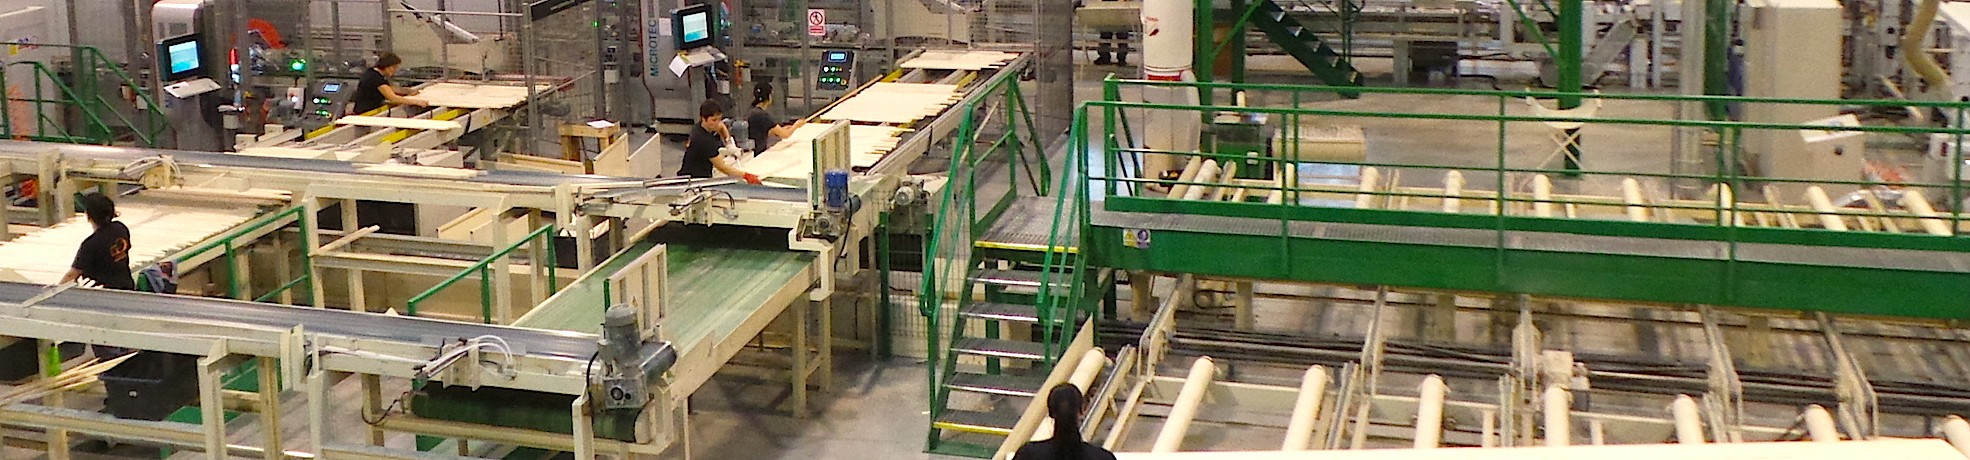 Aflatek Woodworking Machinery- Sanders, Planers, Thicknessers